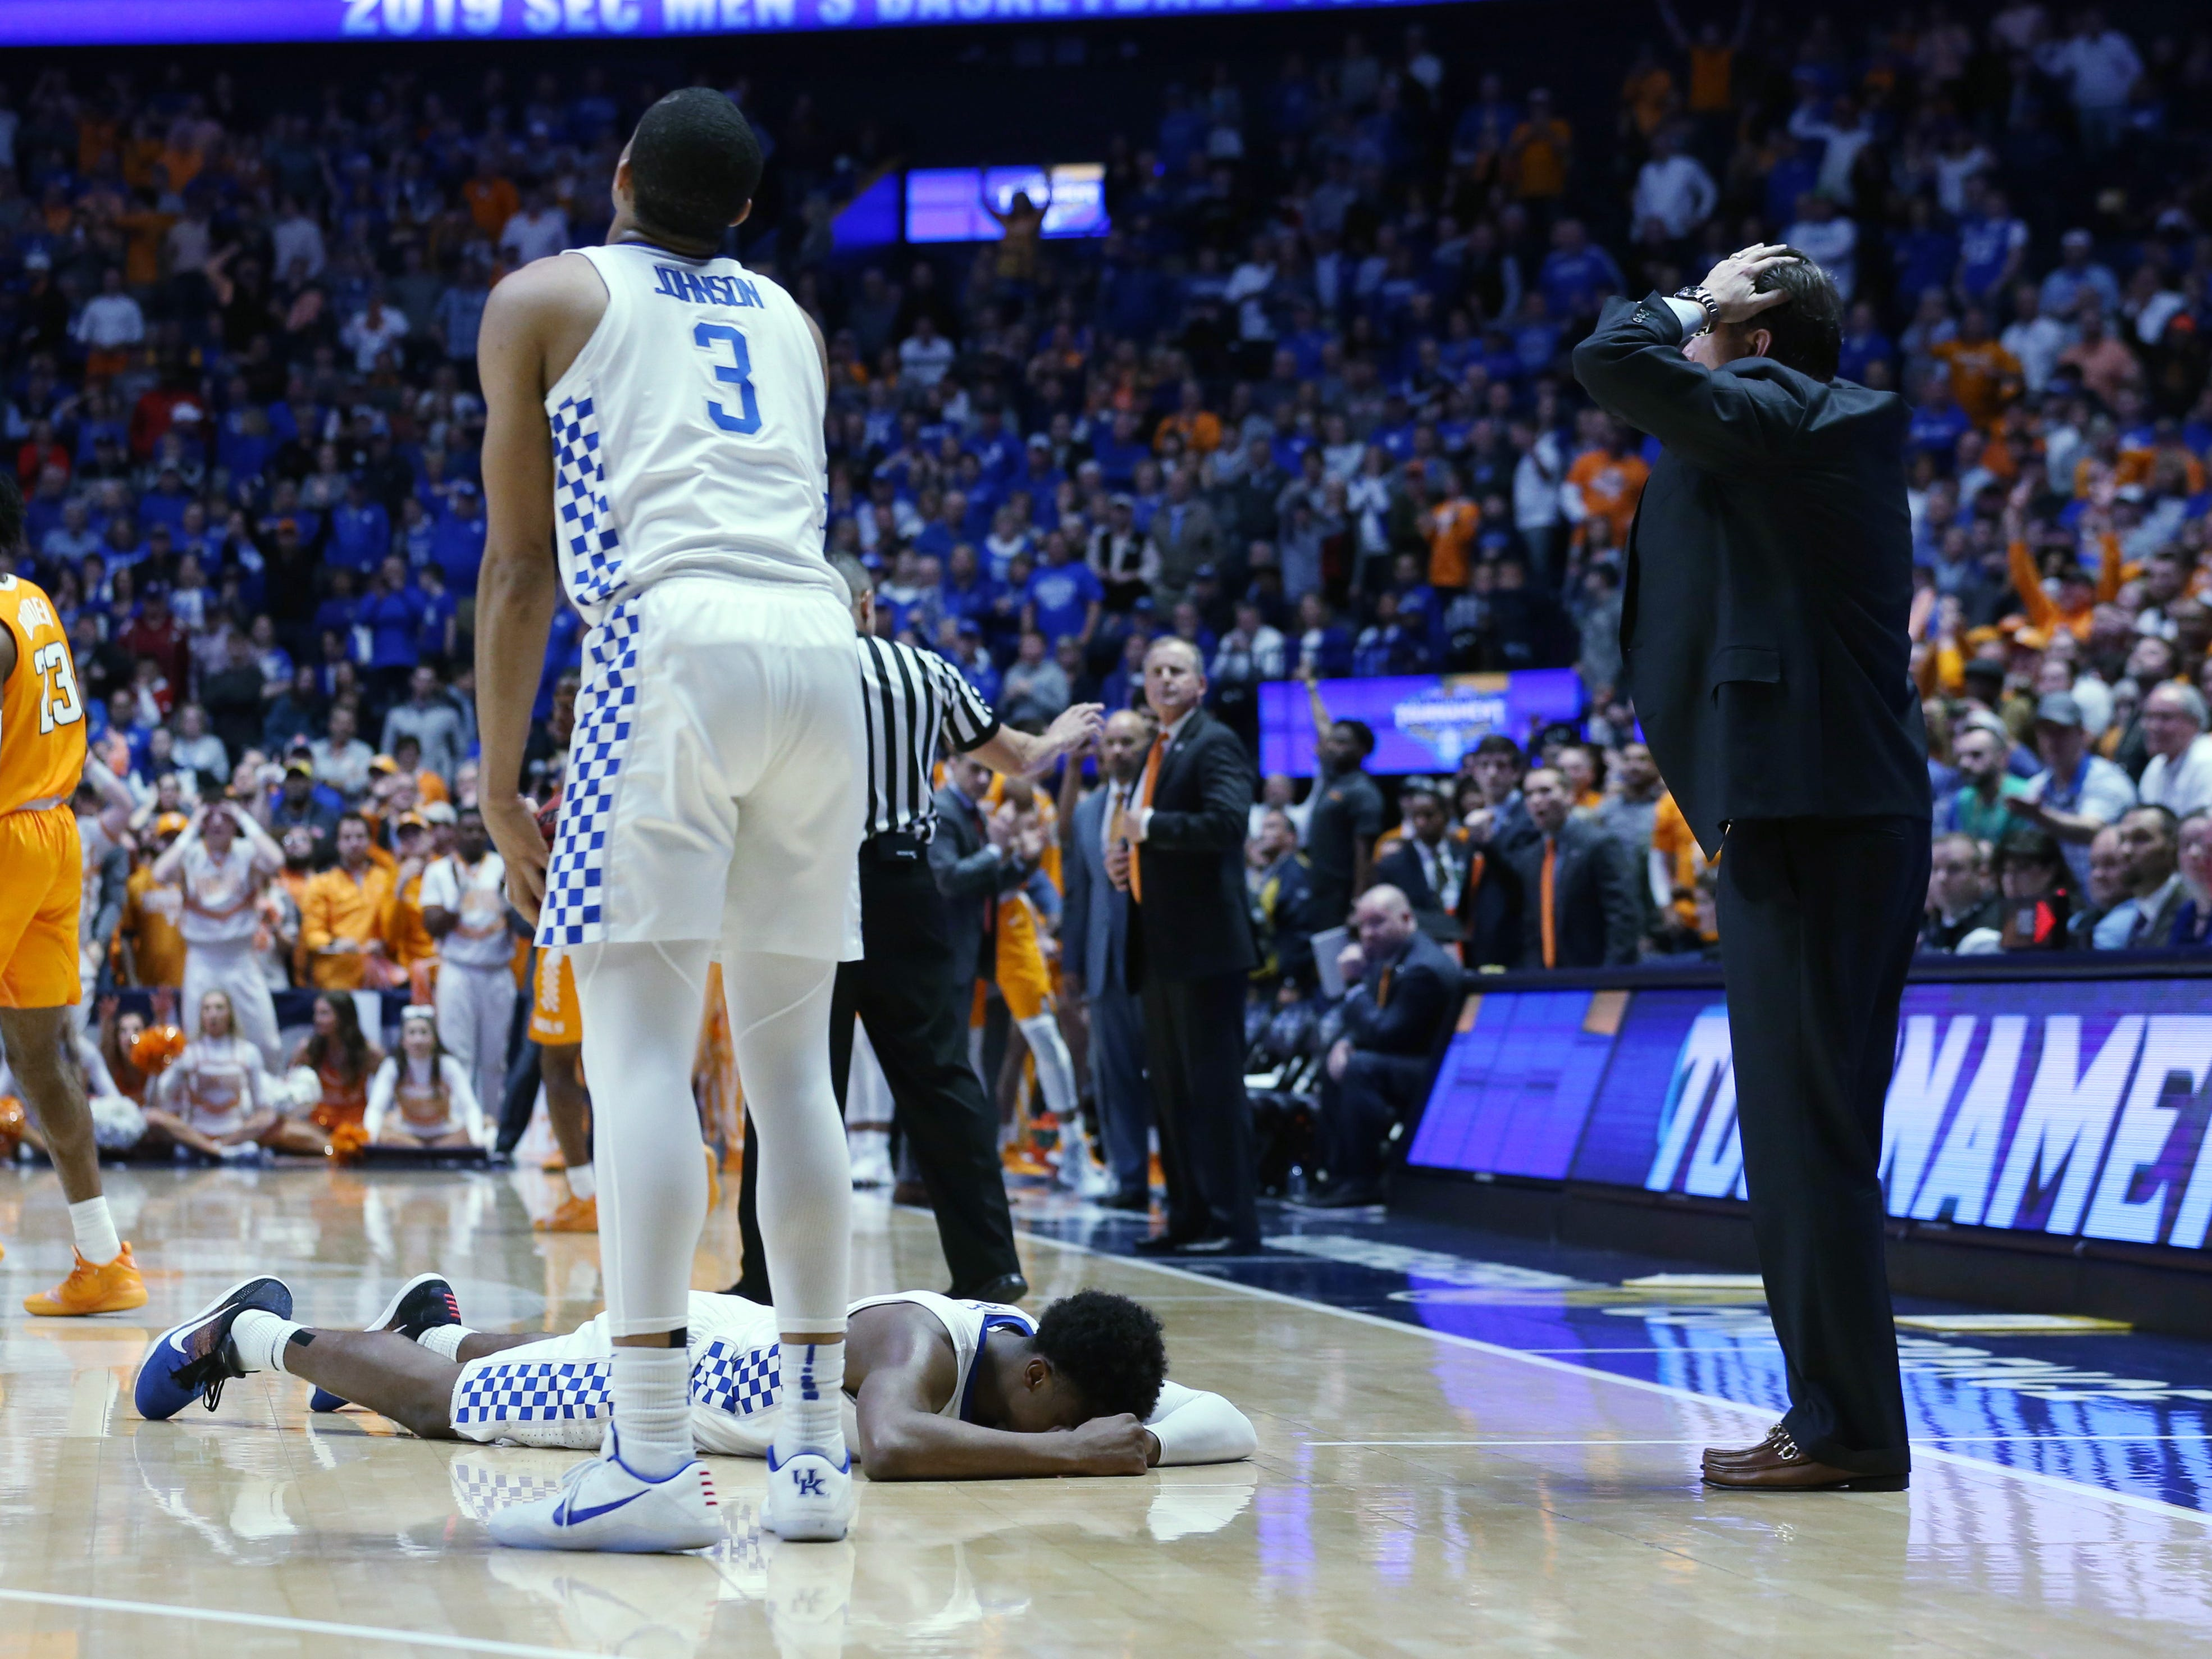 As Kentucky guard Ashton Hagans (2) lies on the court after committing a foul in the closing seconds, Kentucky head coach John Calipari is in disbelief as Tennessee wins the SEC Men's Basketball Tournament game at Bridgestone Arena in Nashville, Tenn., Saturday, March 16, 2019.